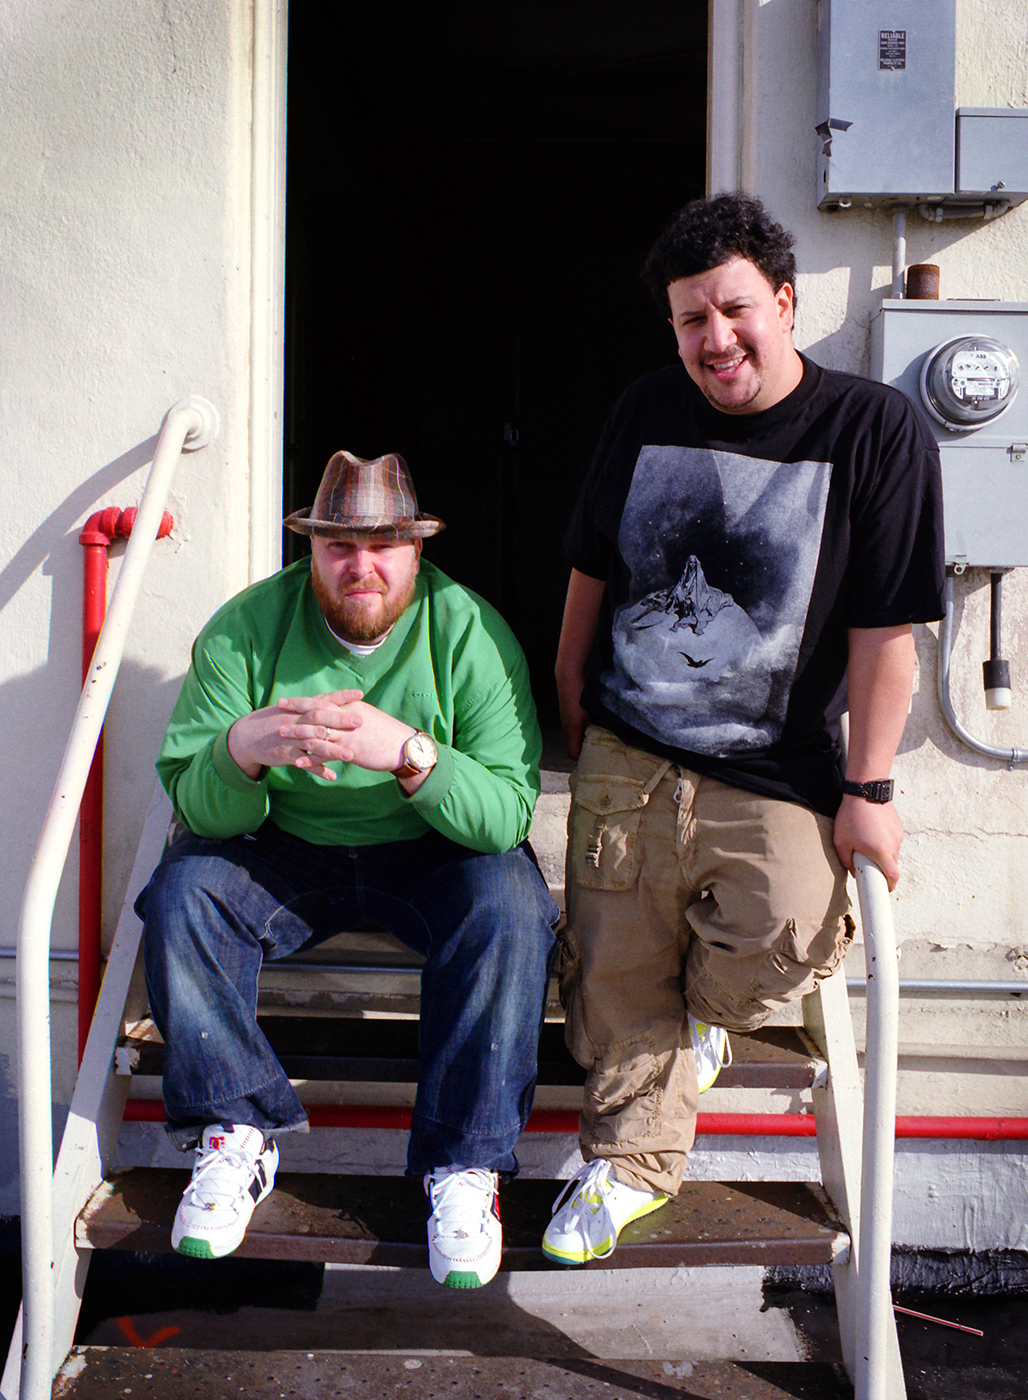 JonBuschemi (gourmet) and steve patino (androidhomme)  used to be at dc shoes.jpg